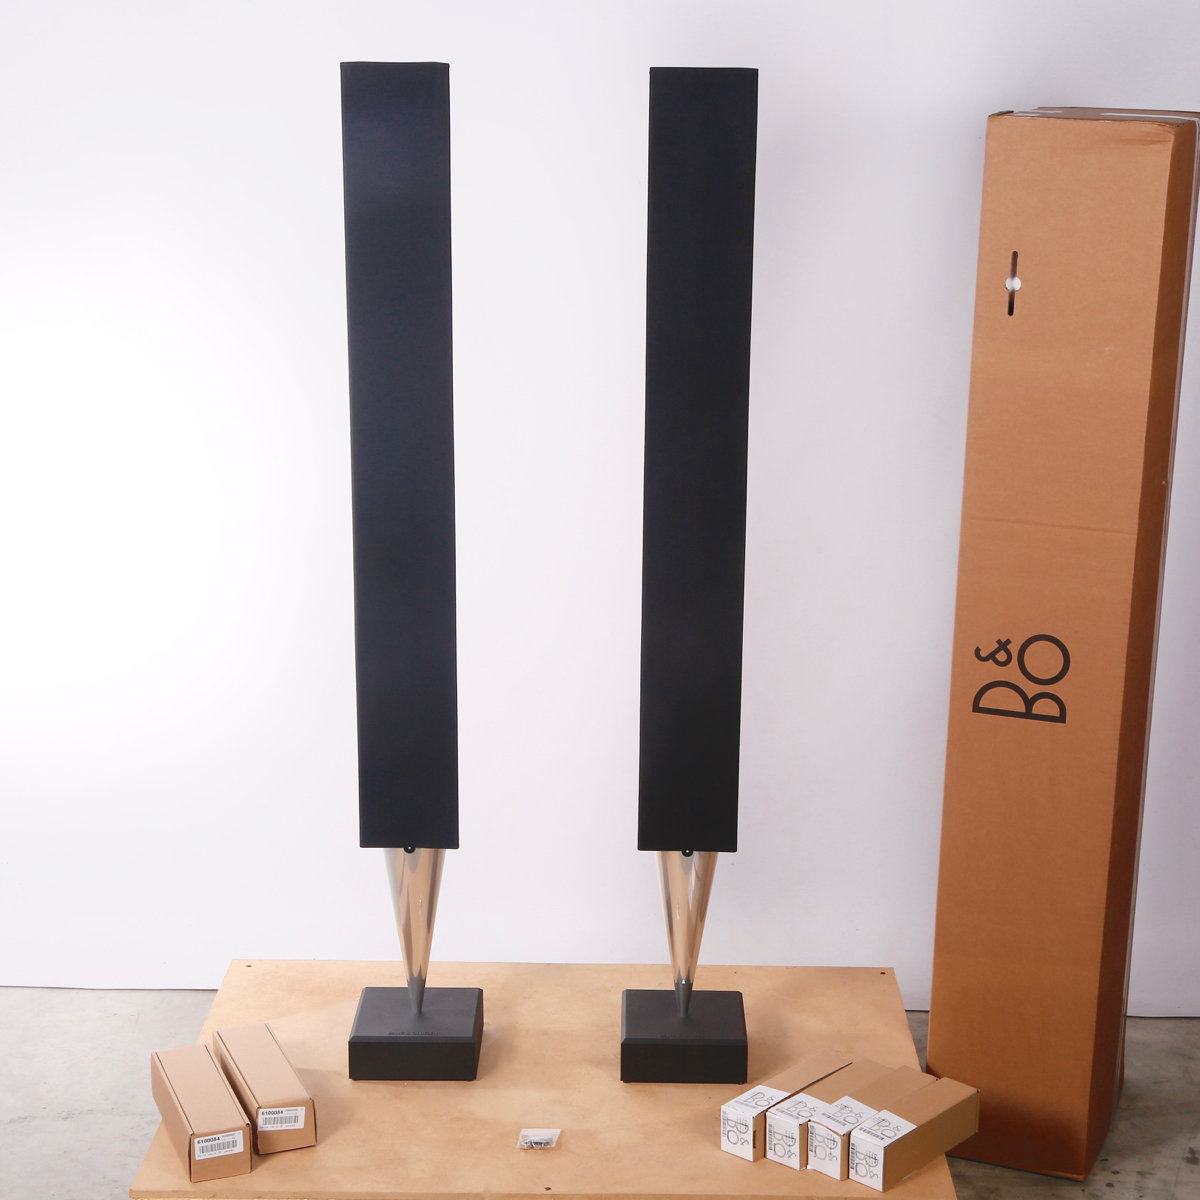 Pre-owned BeoLab 8002 Speakers